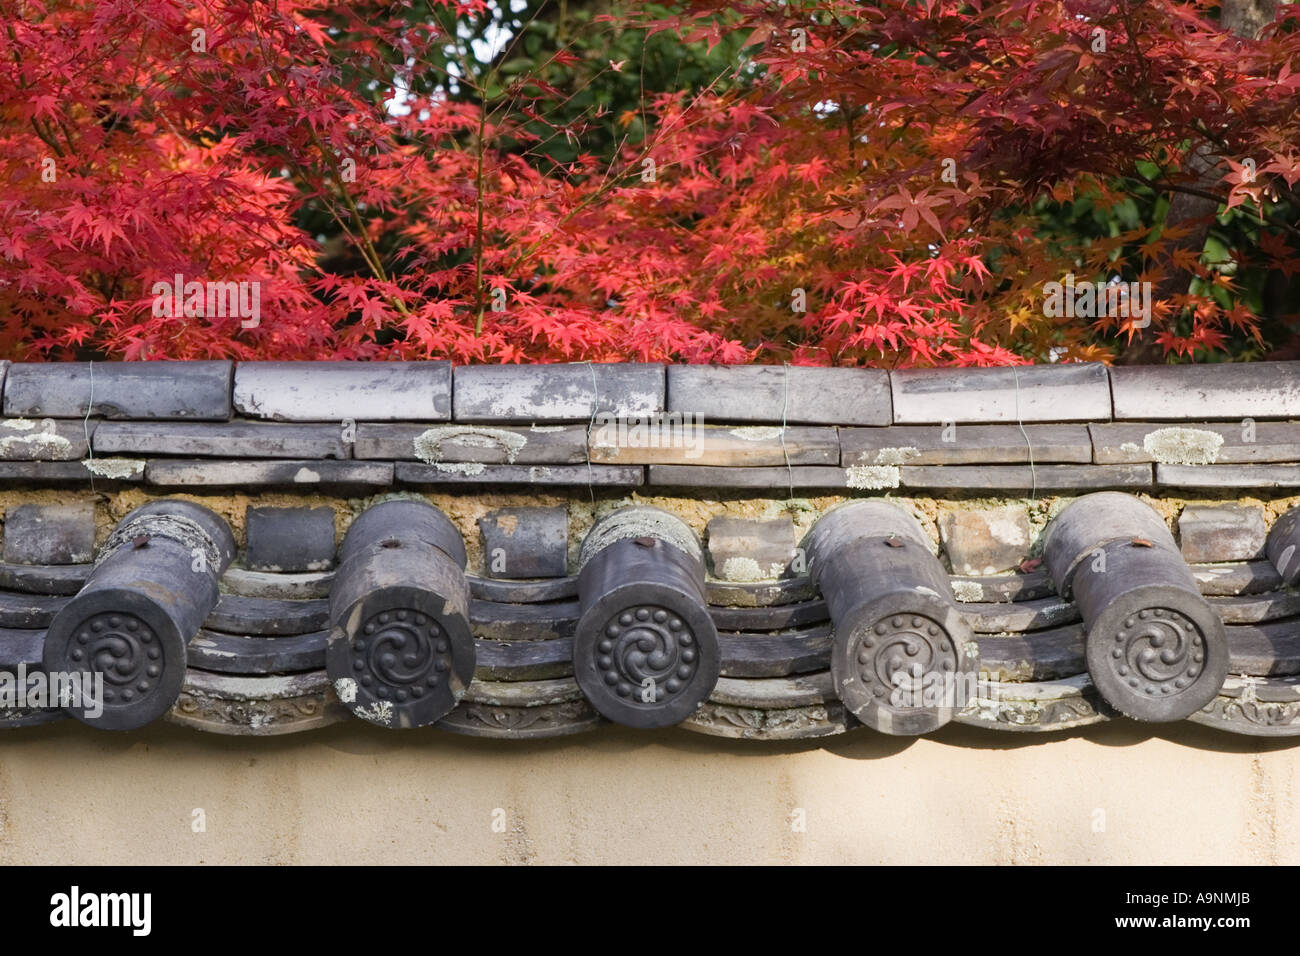 Japanese maple (Acer palmatum) during autumn and detail of wall and tile at Daitokuji Temple, Kyoto, Kansai Region, Japan - Stock Image